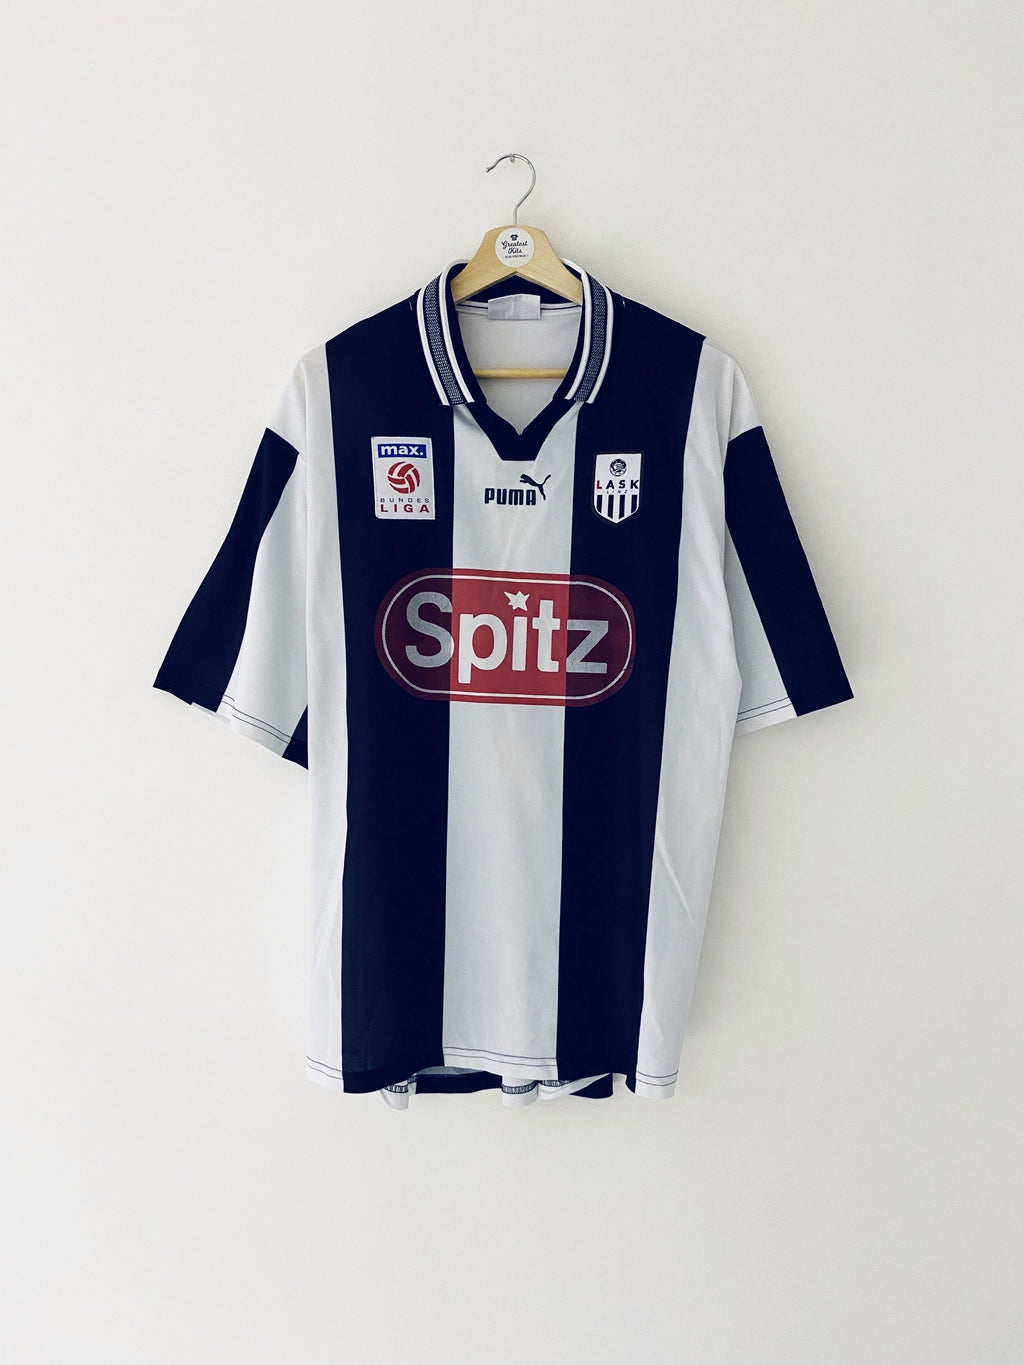 1999/00 LASK Linz Home Shirt (L) 9/10